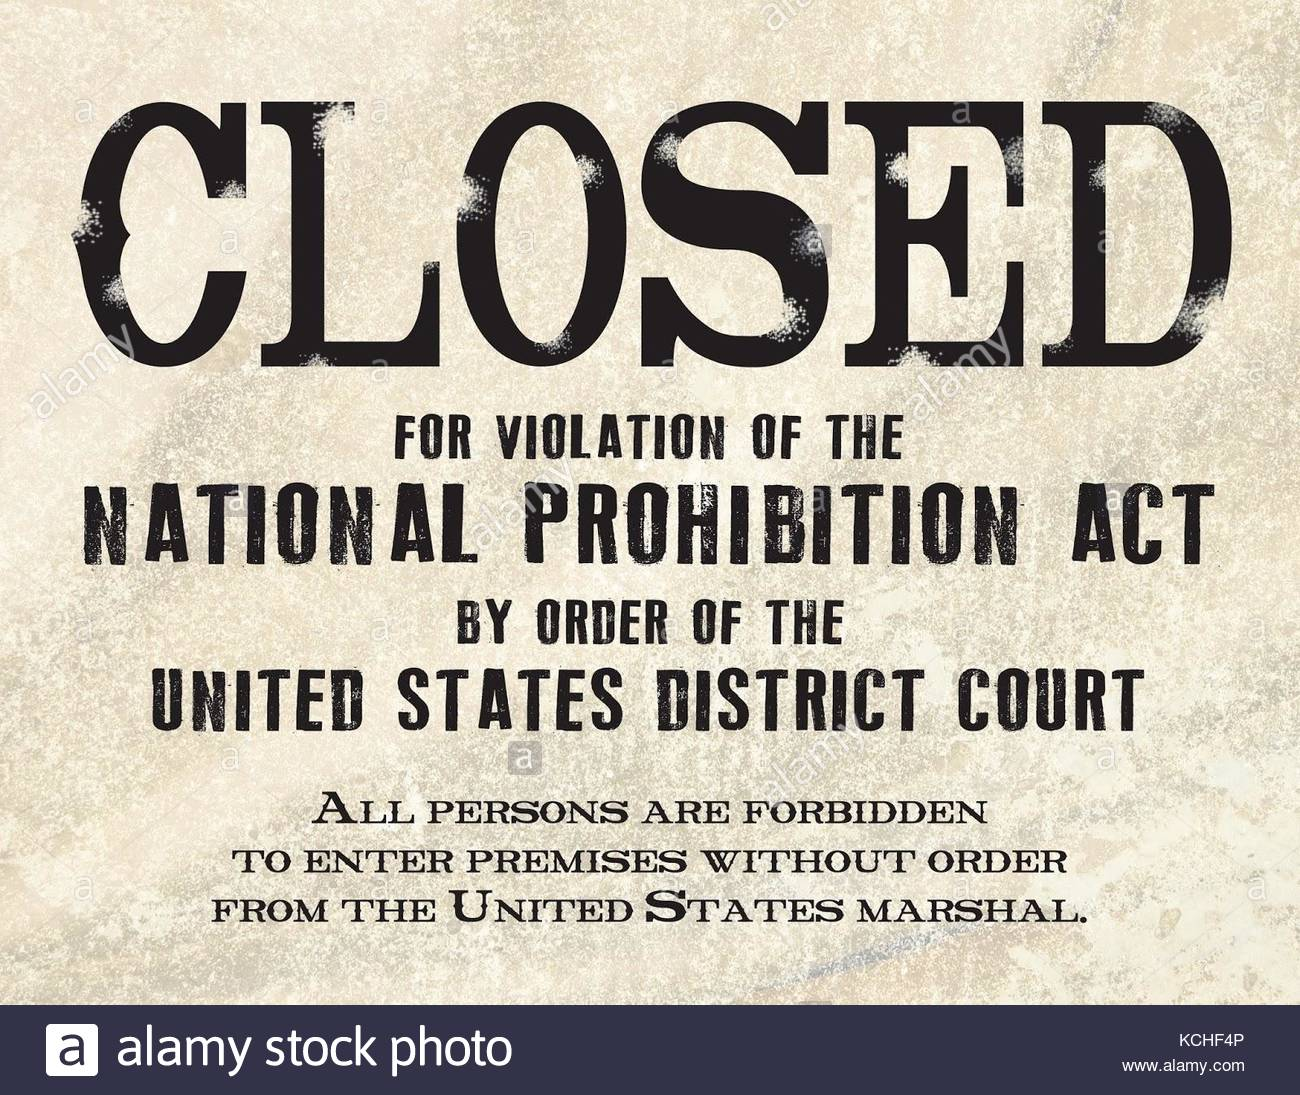 the origin and history of alcohol prohibition Prohibition: a photographic history of prohibition in the united states by zack walkter january 29, 2018, 4:43 pm prohibition was the law of the land in the united states for just about 13 years, yet that period — from 1920 through 1933 — has become iconic in the american psyche.